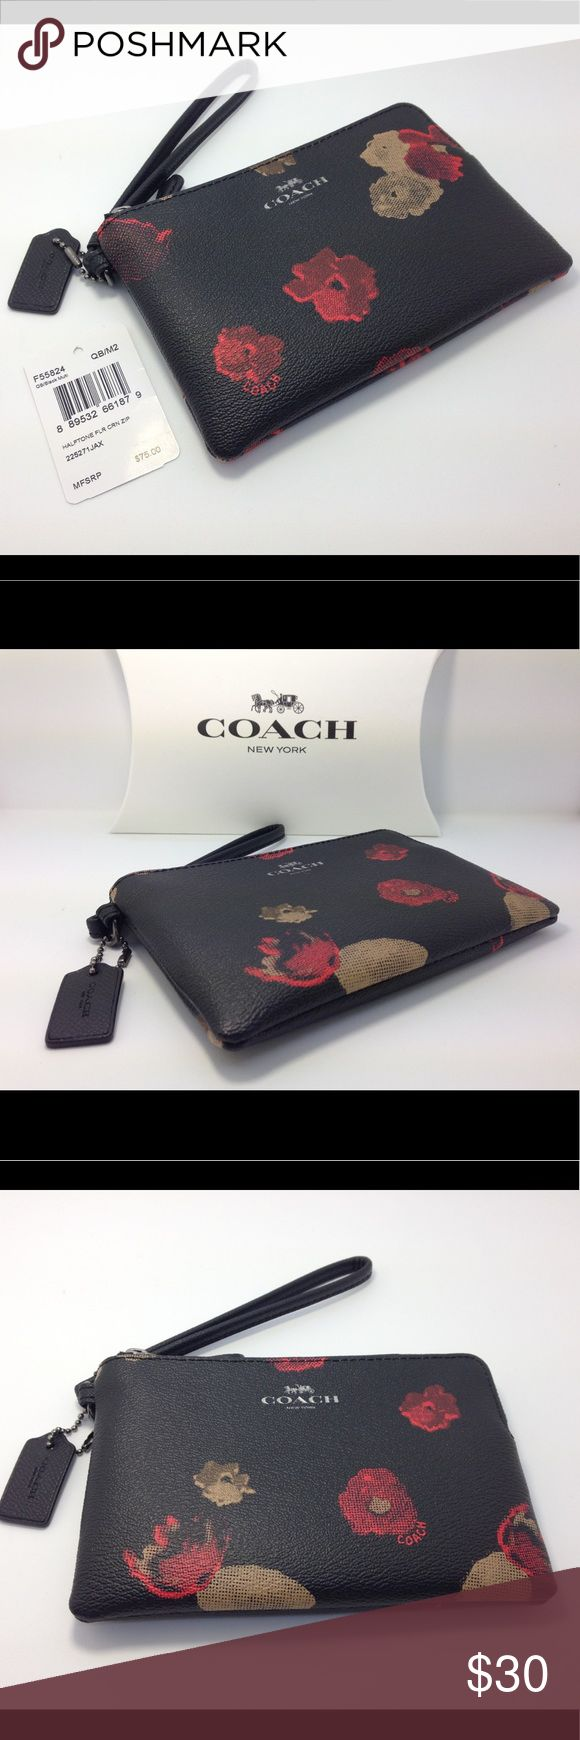 "Coach Women's Wristlet F55824 Brand New This is brand new from Coach factory and it comes with gift box and tag price. 2 credit card pockets and multifunction pockets. Approximately: 6.25"" ( L) x 4"" (H) . Coach Bags Clutches & Wristlets"